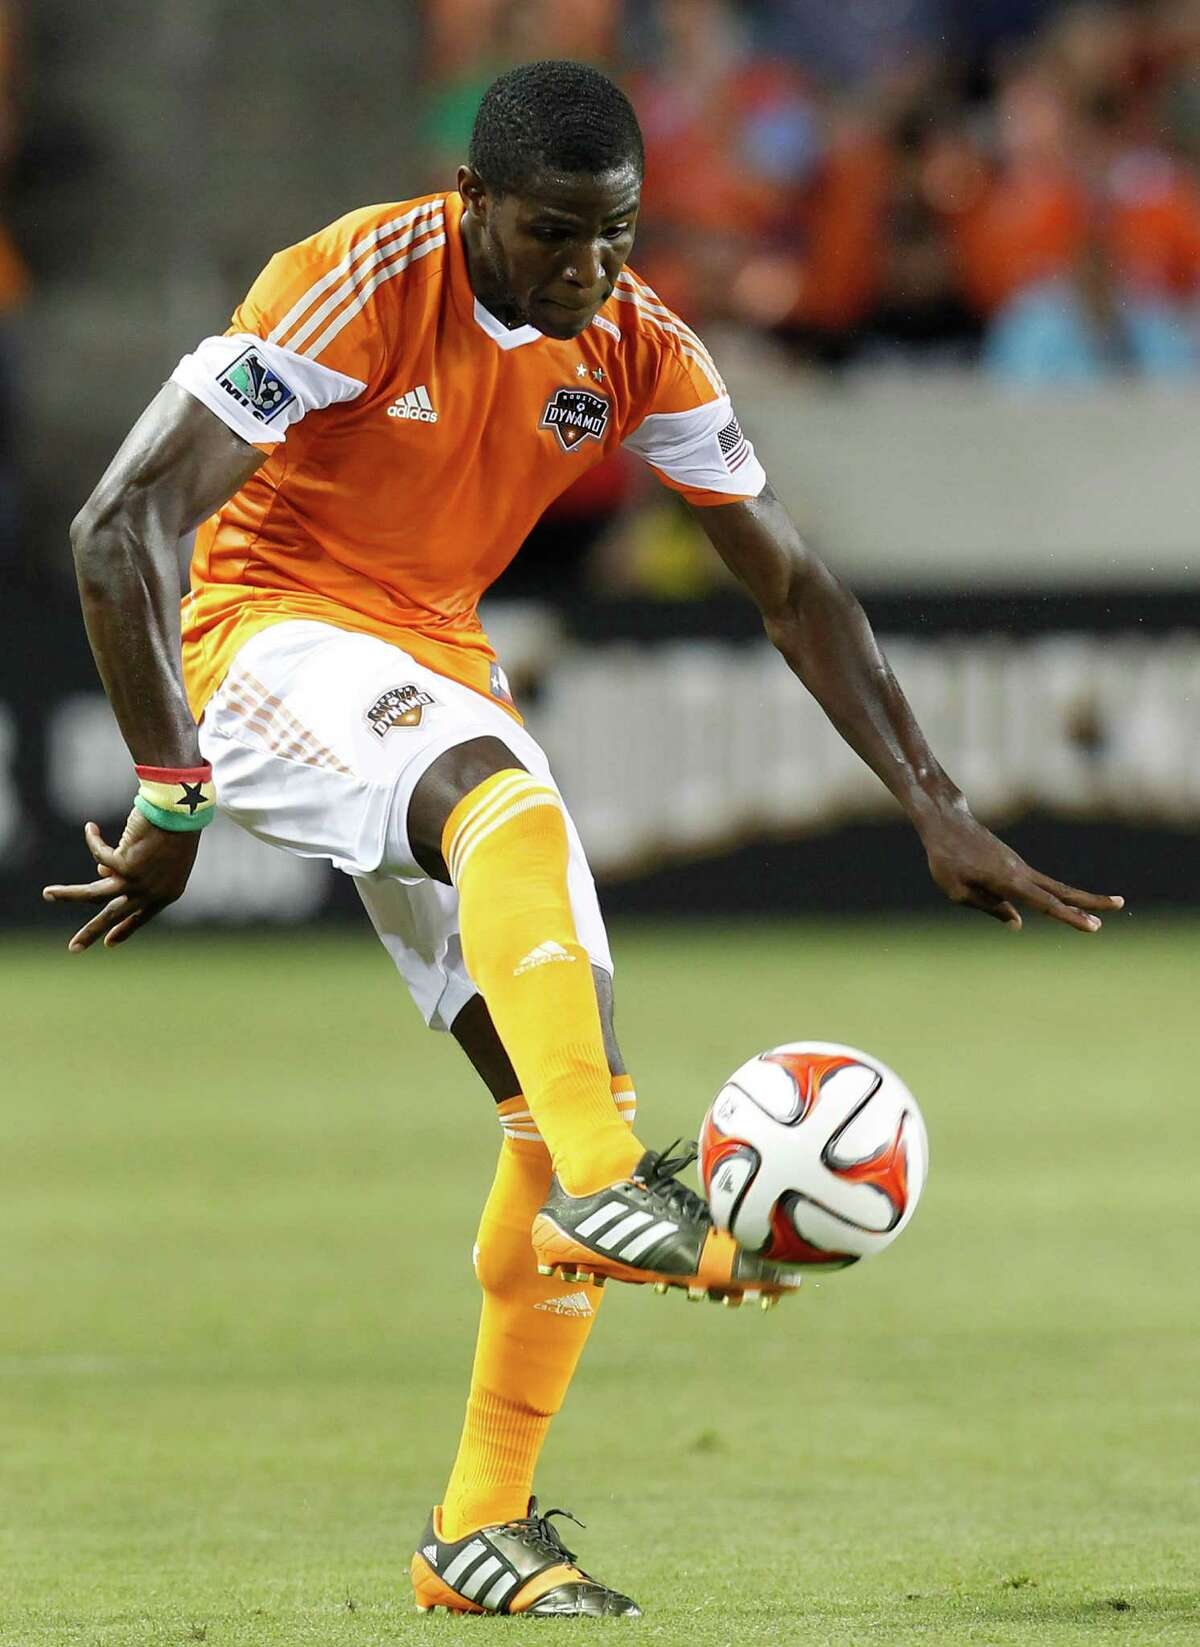 Houston Dynamo defender Kofi Sarkodie (8) traps the ball again as the Los Angeles Galaxy in the first half on May 17, 2014 at BBVA Compass Stadium in Houston, Texas.